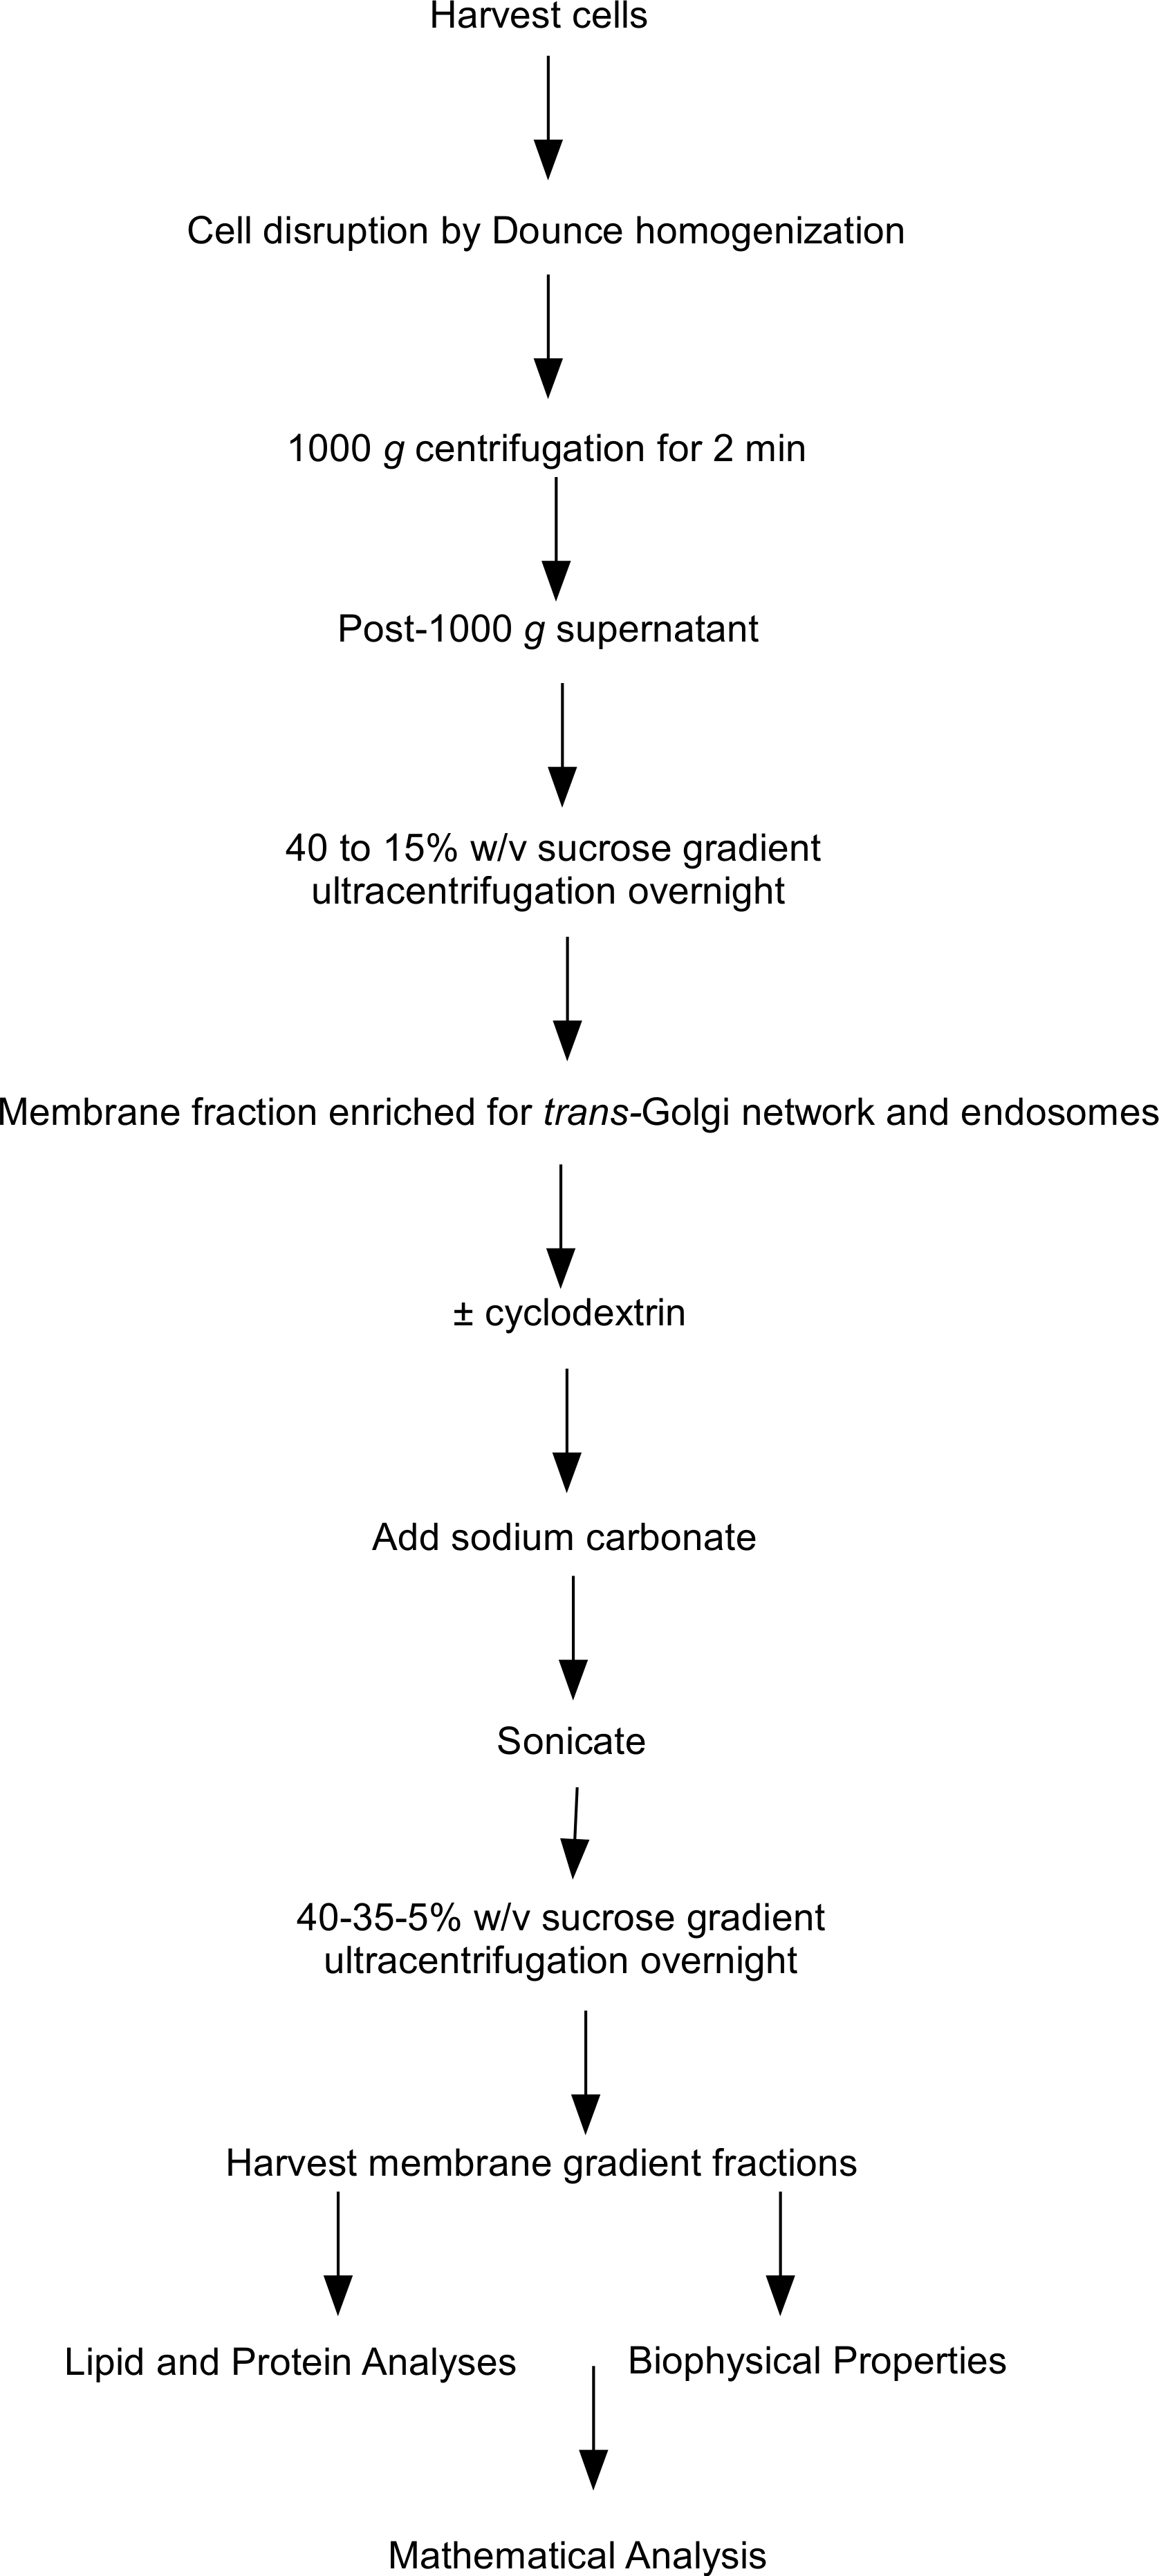 Modeling the effects of cyclodextrin on intracellular membrane download full size image geenschuldenfo Image collections